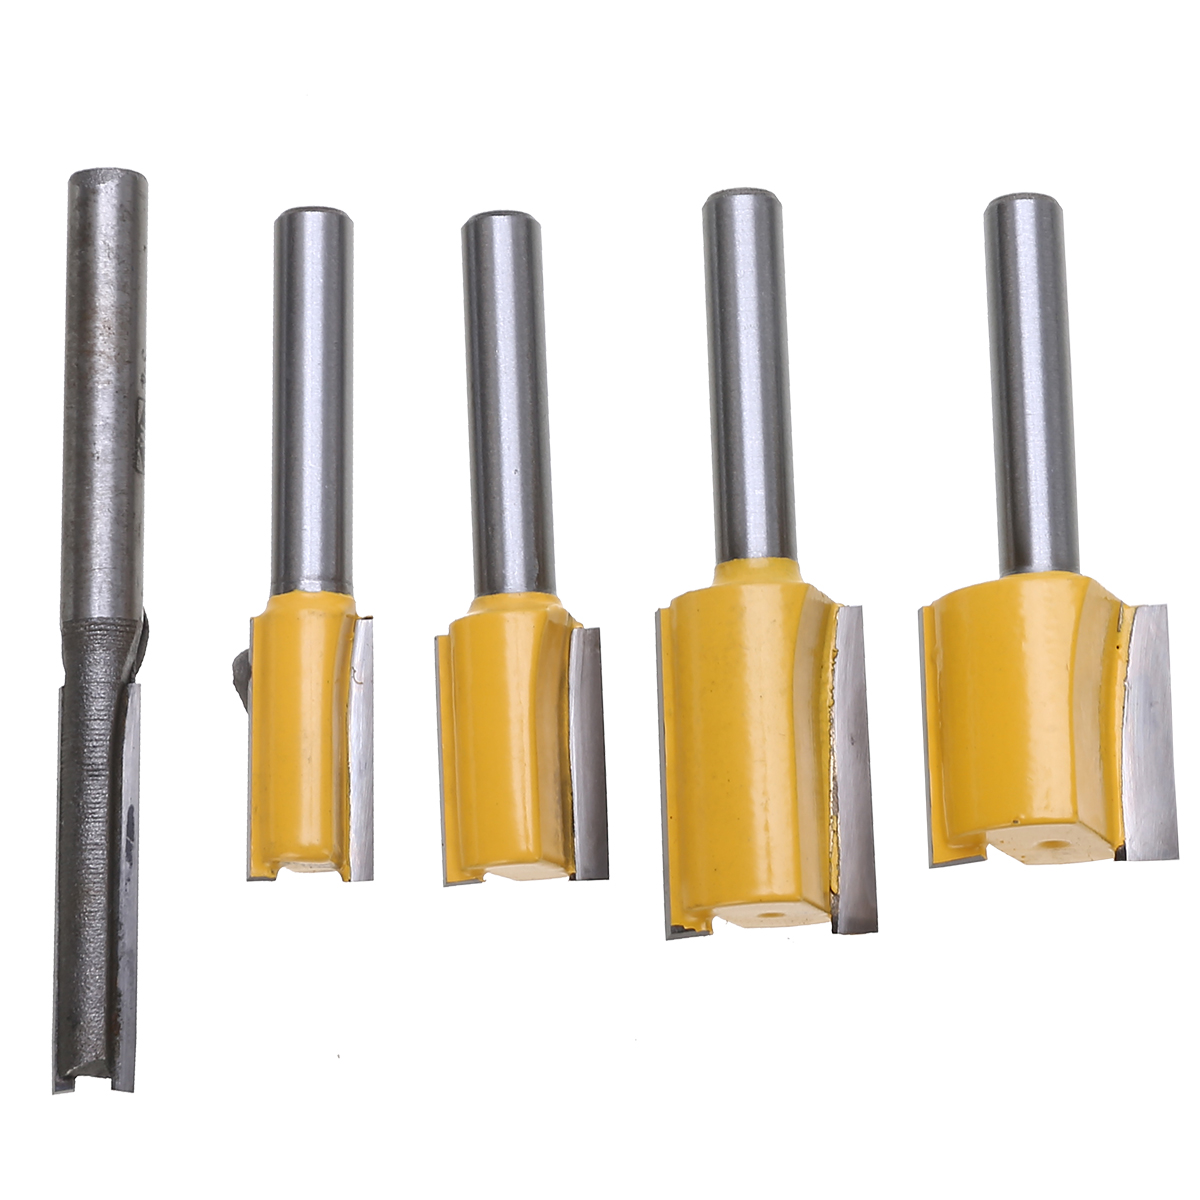 5pcs Set Hard Alloy Straight Trimmer Router Bits 1 4 quot Shank Trimming Milling Cutter for Wood Woodworking Machine Tools in Milling Cutter from Tools